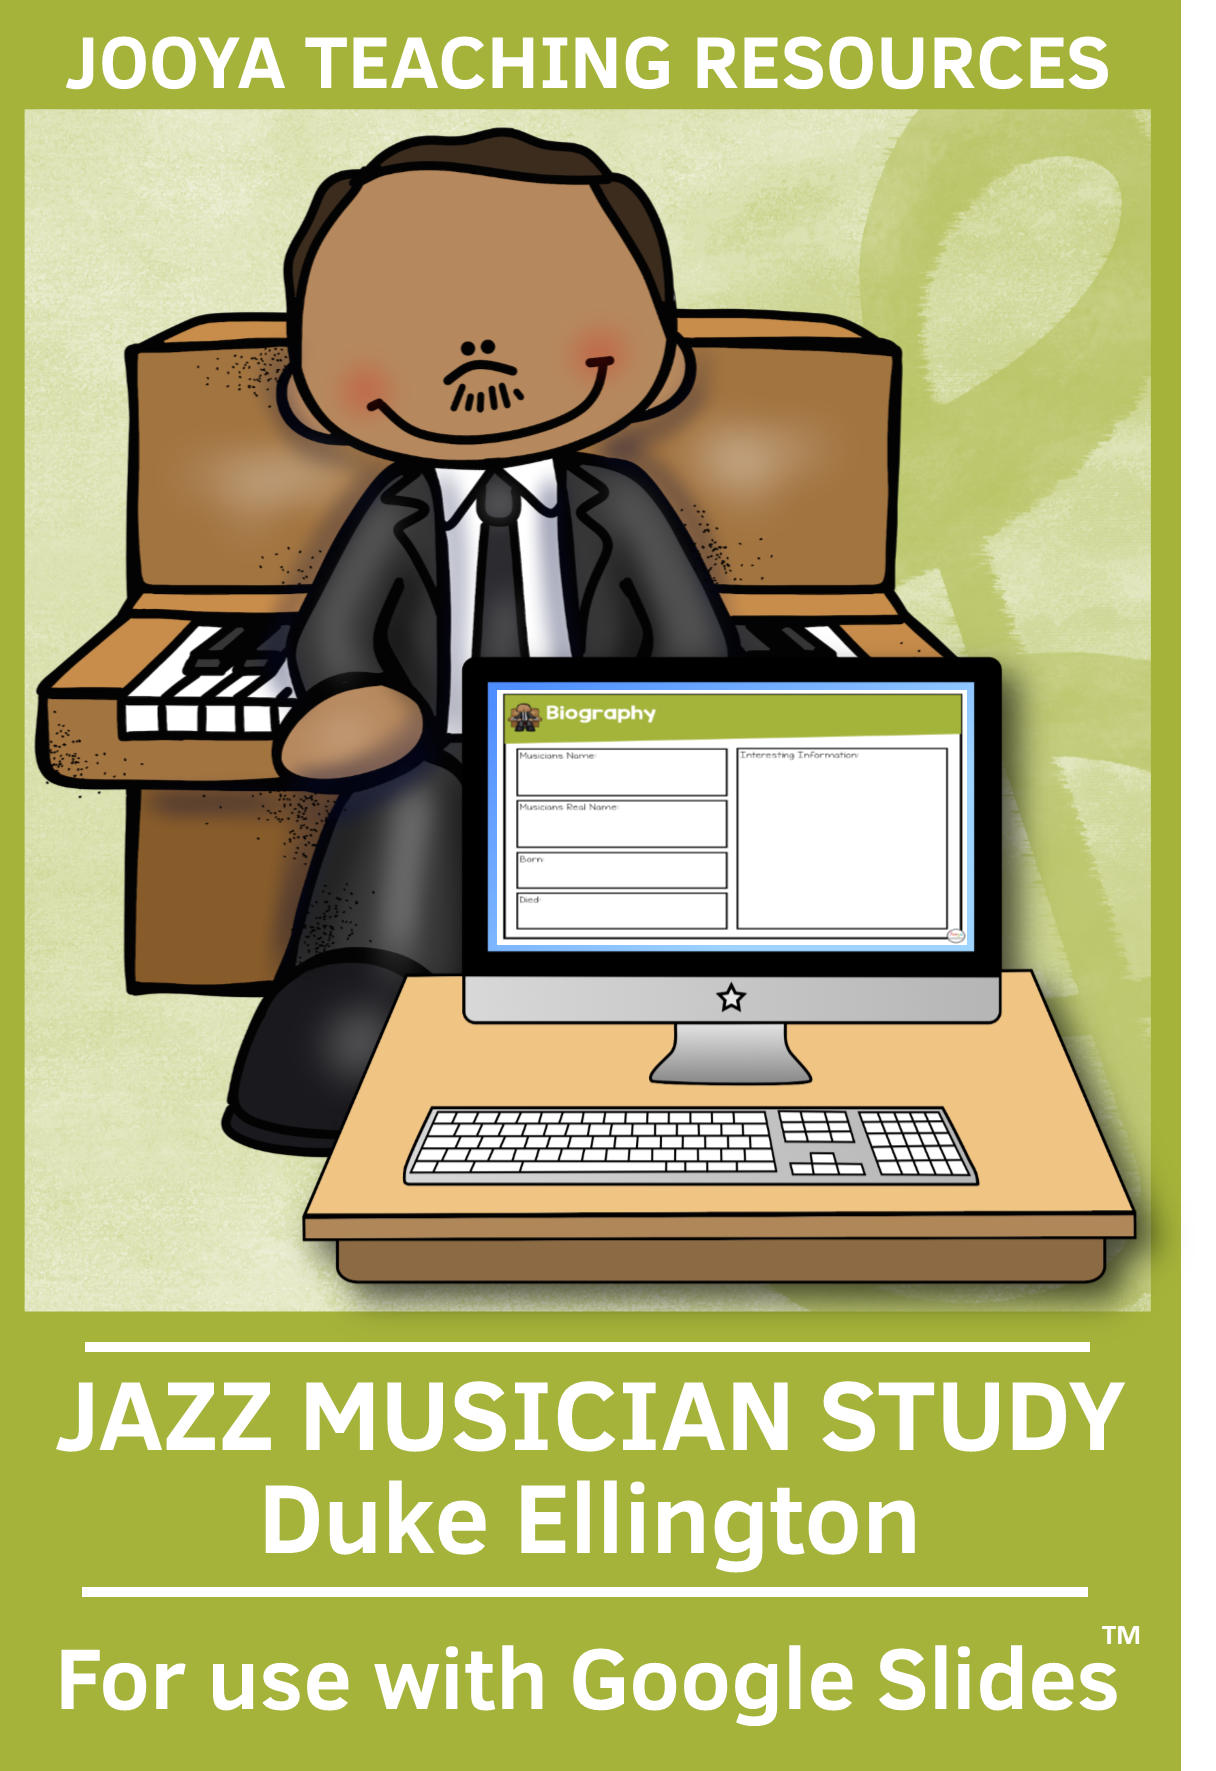 Jazz Musician Study For Use With Slides